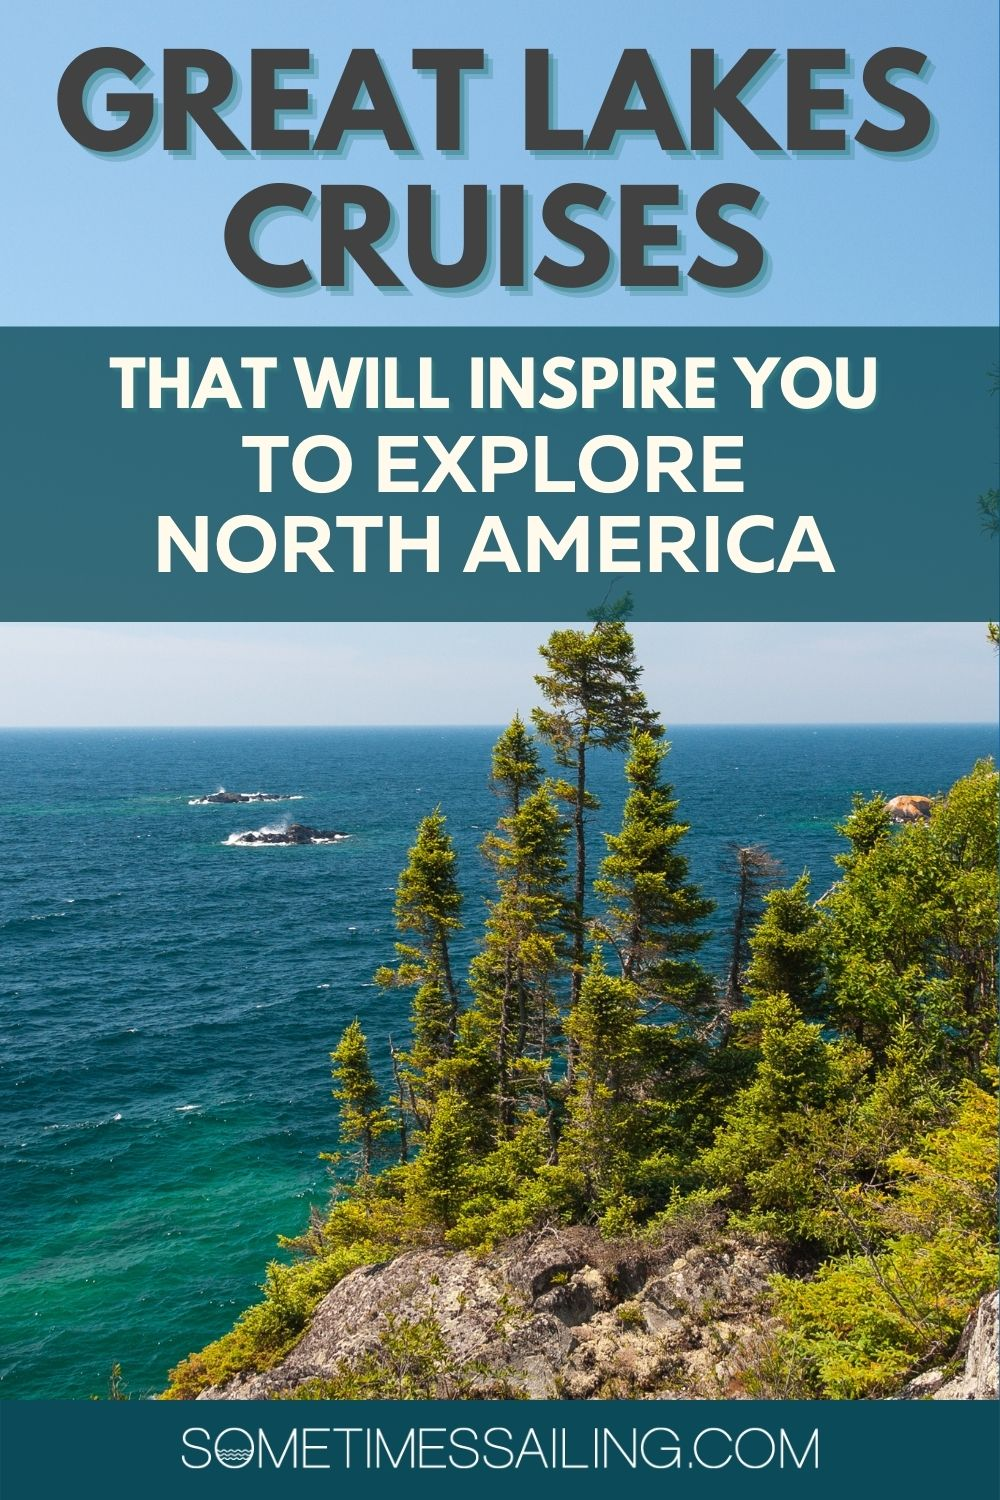 Great Lakes Cruises Pinterest image with a photo of one of the lakes, with evergreen trees in the foreground.